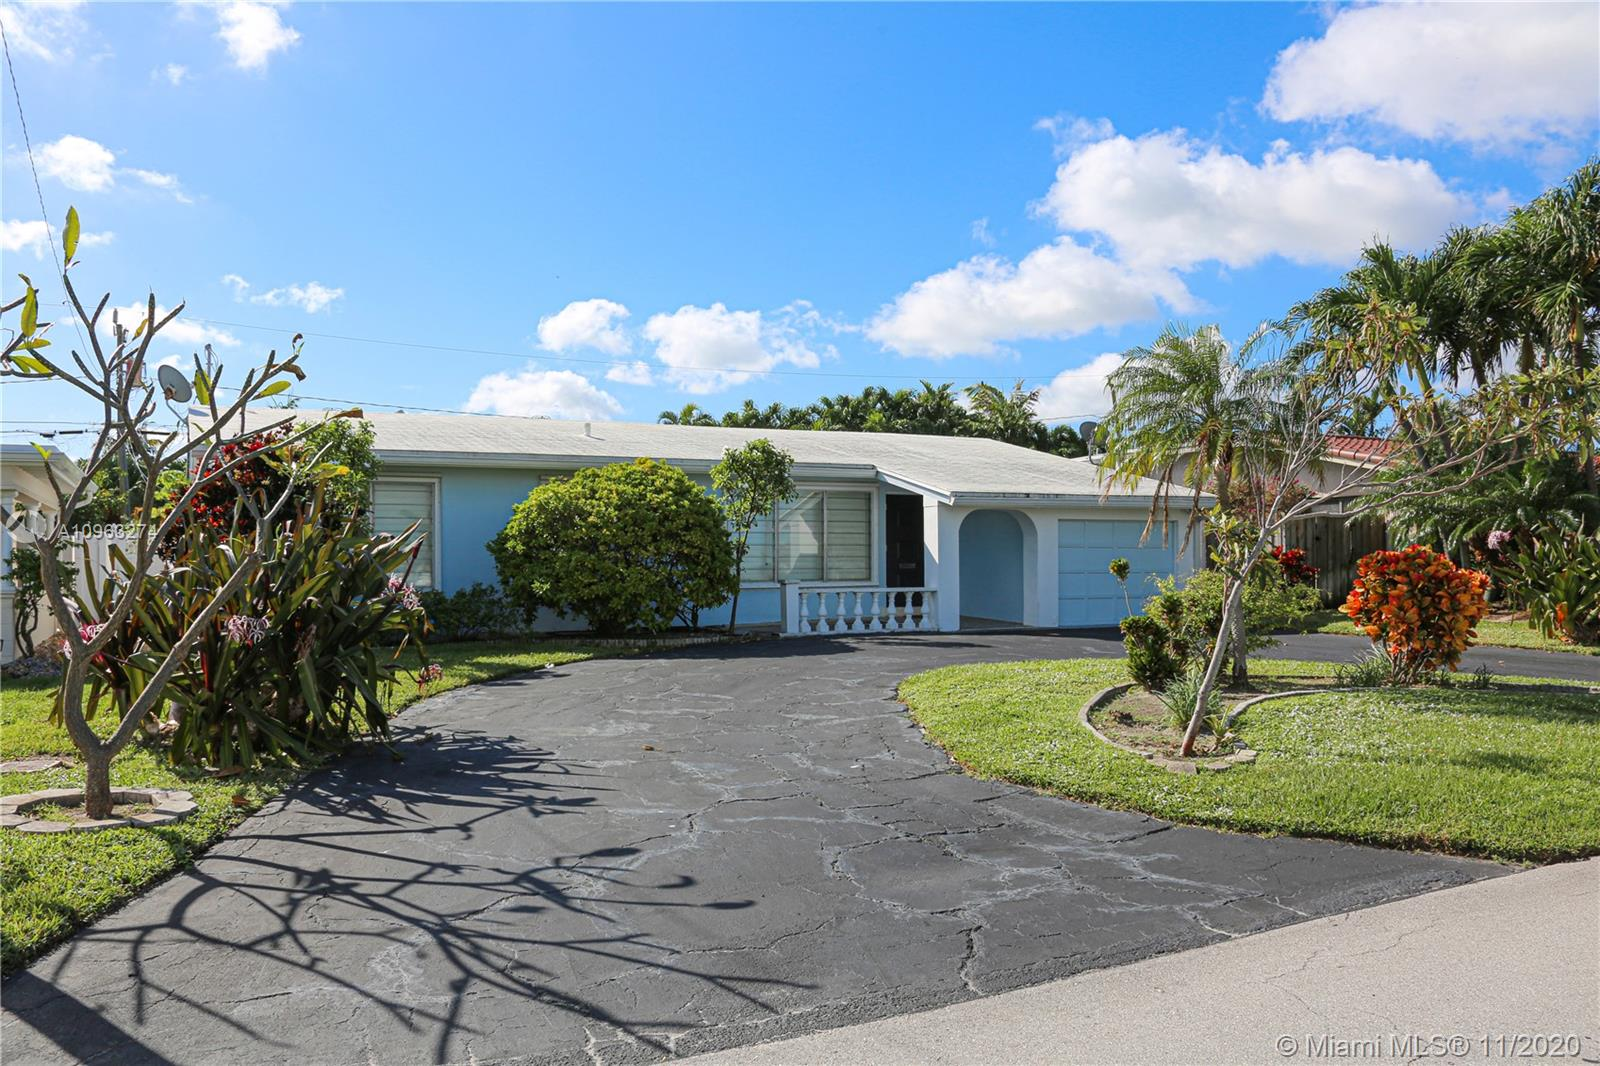 Details for 234 Avalon Ave, Lauderdale By The Sea, FL 33308